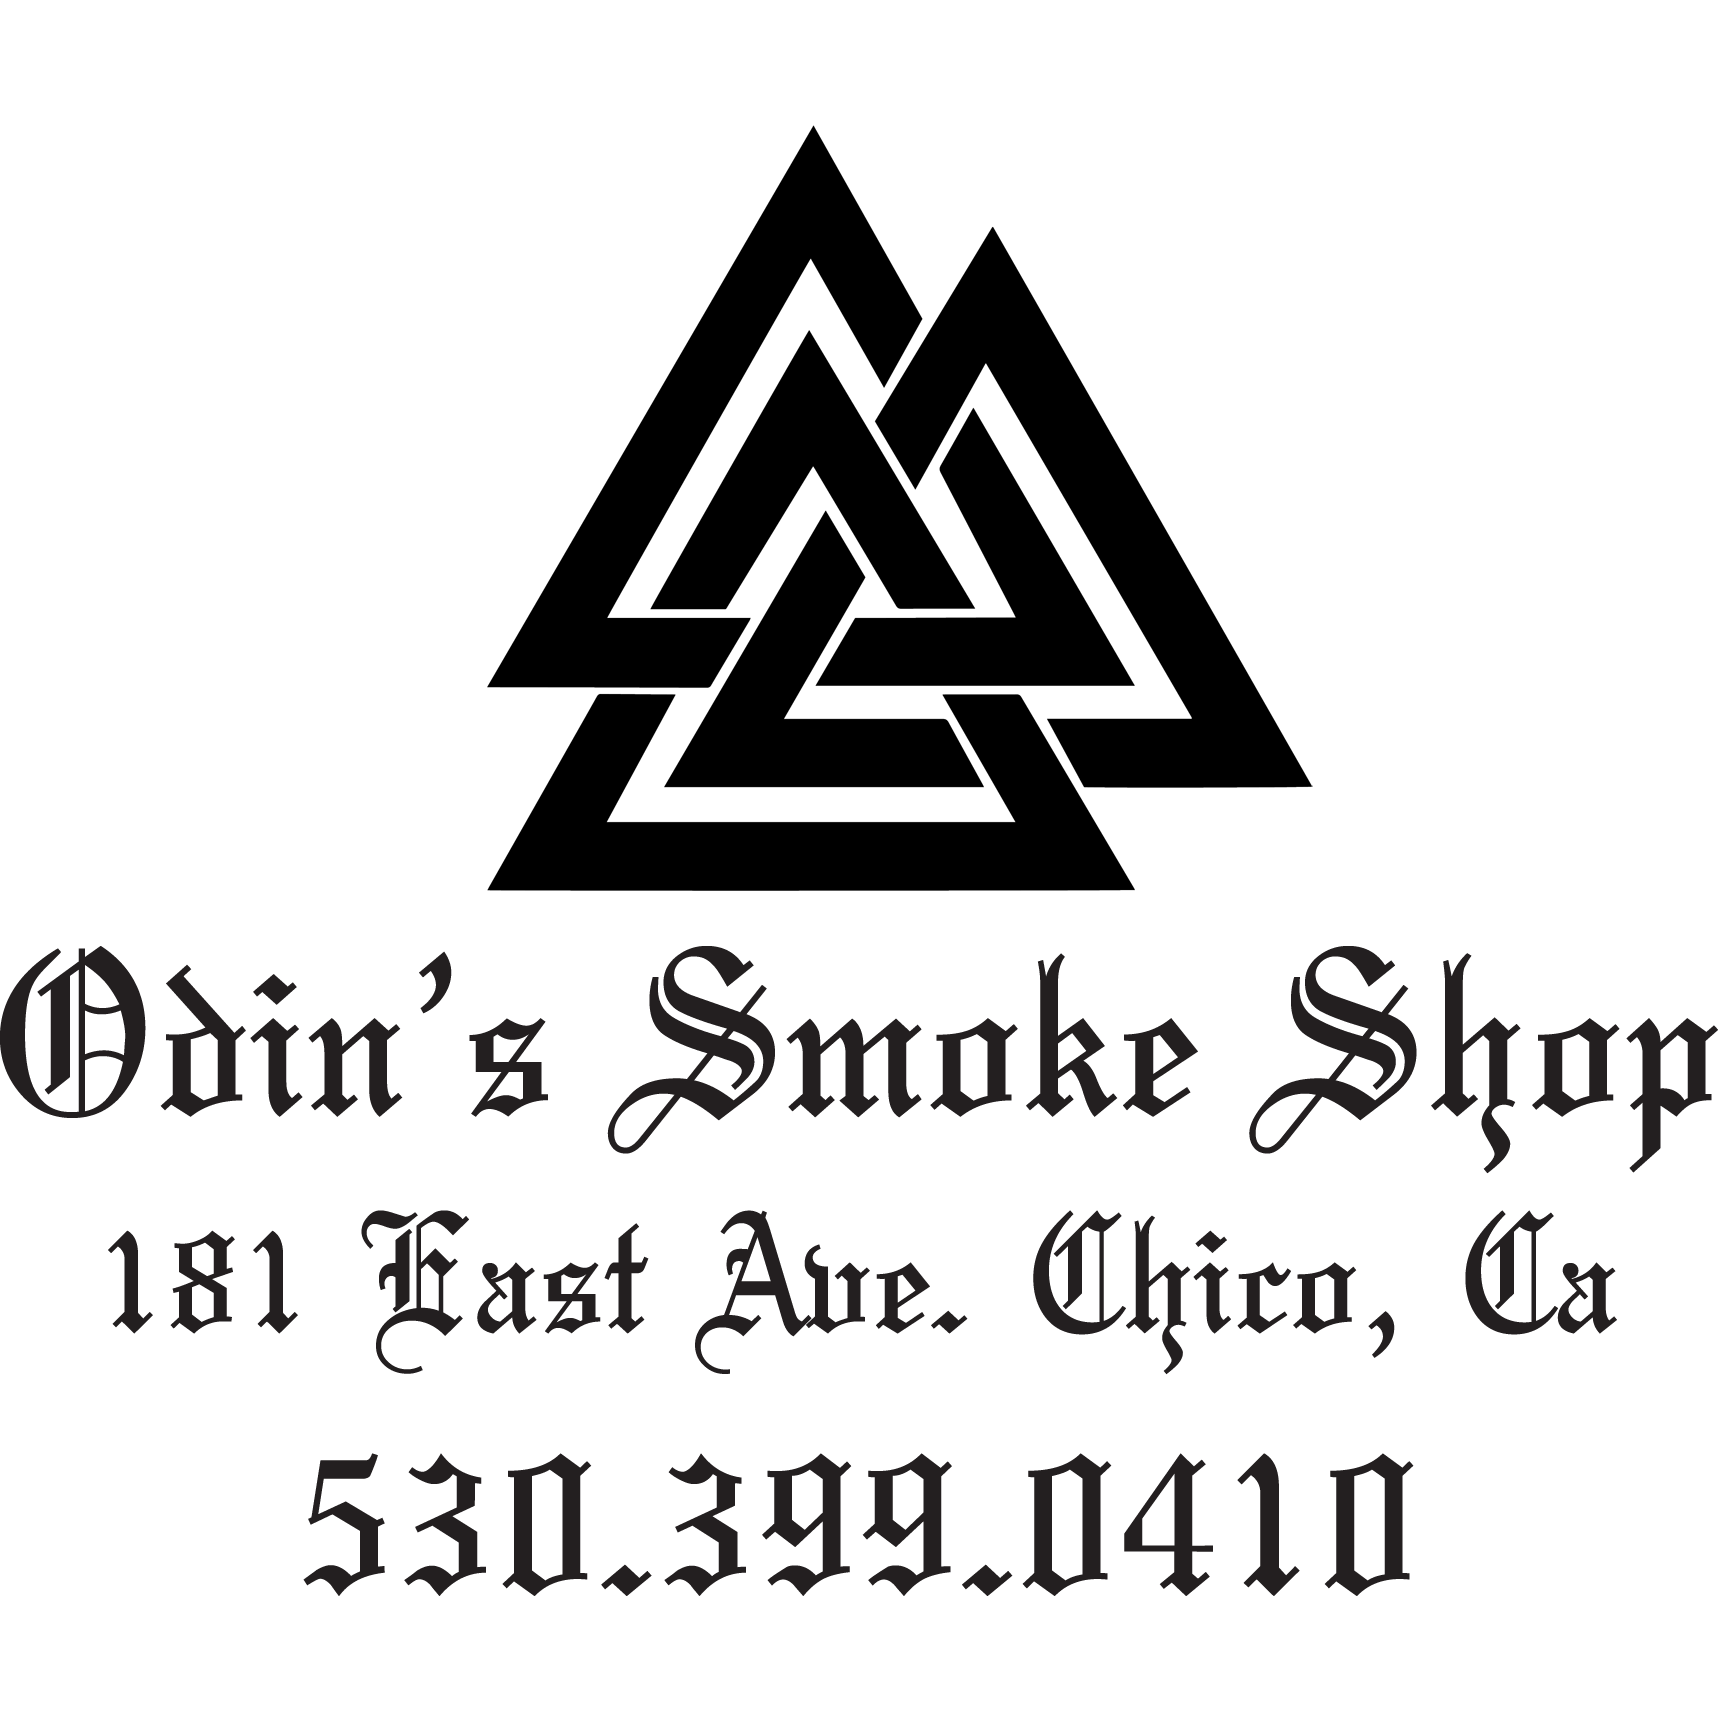 Odin's Smoke Shop, 2020 sponsor of Wake the Buc Up in Chico for 106.7 Z-Rock